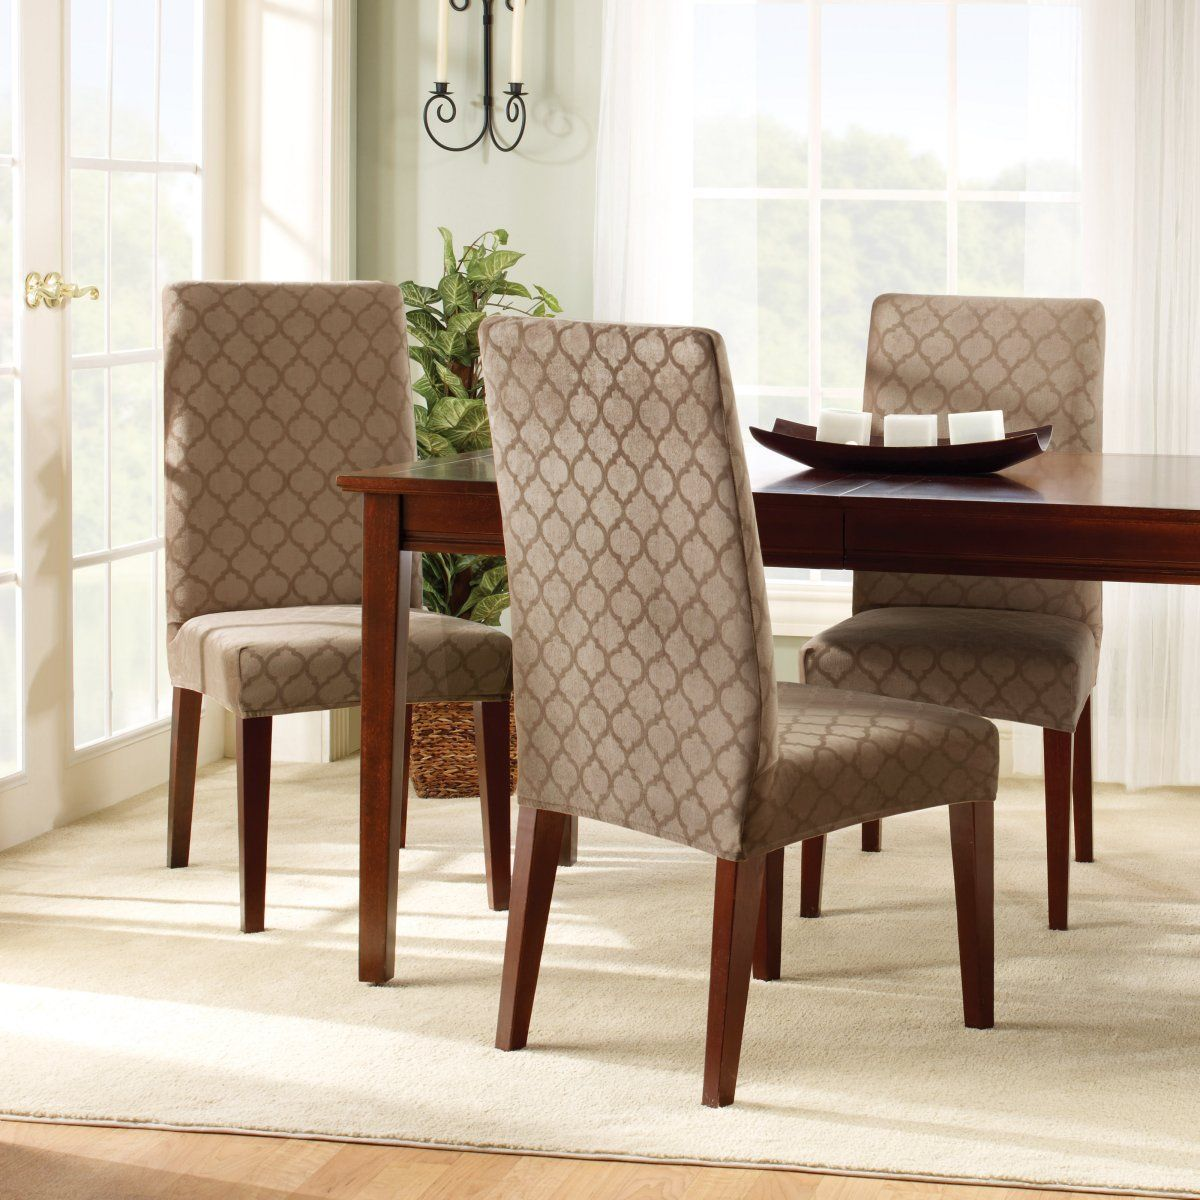 Dining Room Chair Covers With Wooden Table And Carpet  House Cool Covering Dining Room Chair Cushions 2018